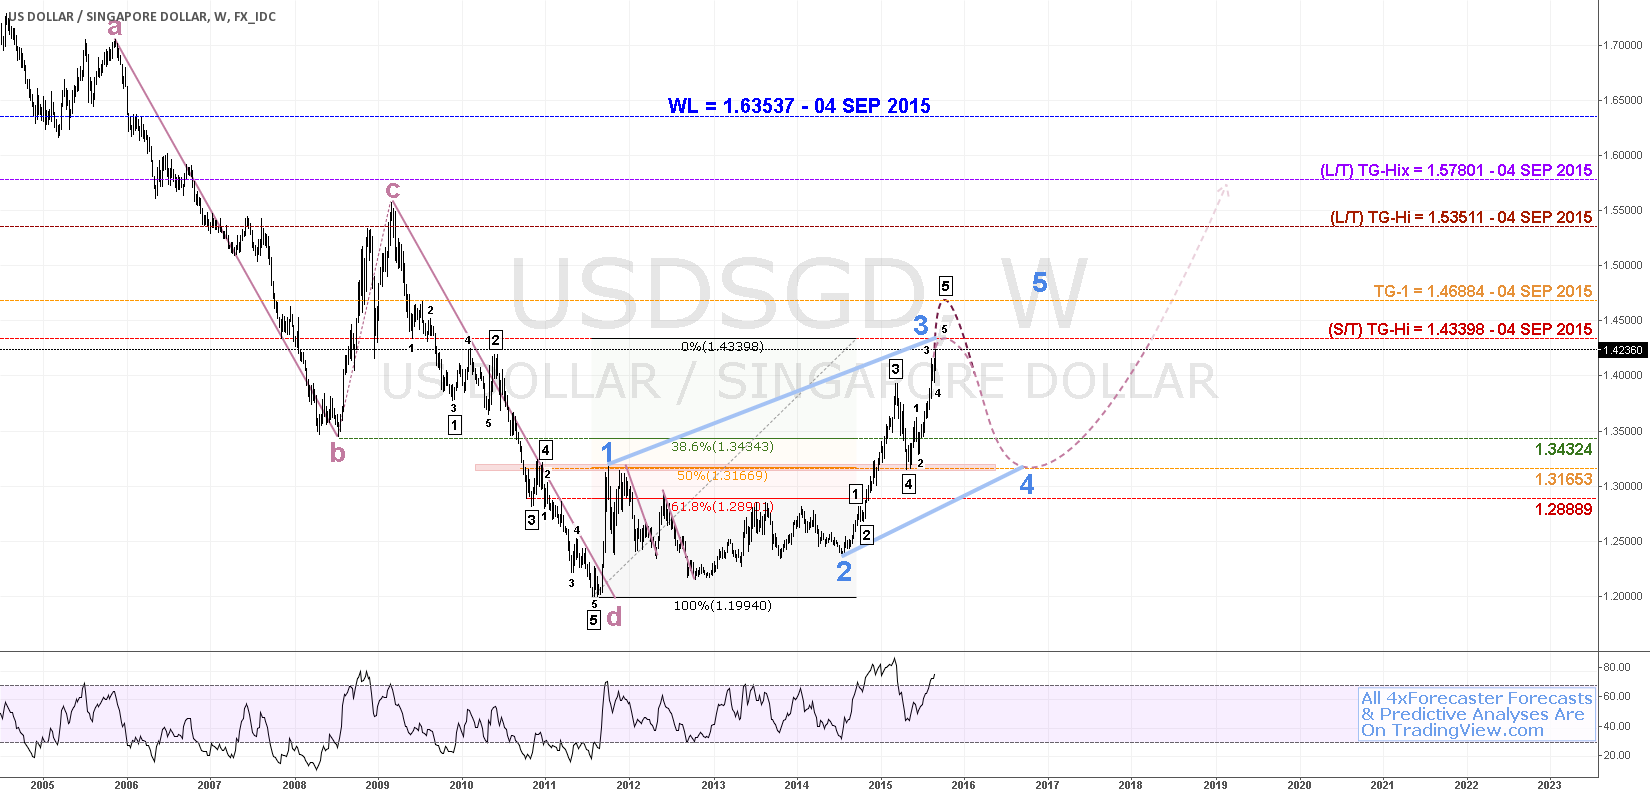 $USD v $SGD: S/T Bearish; L/T Bullish; 50% Support At #fibonacci